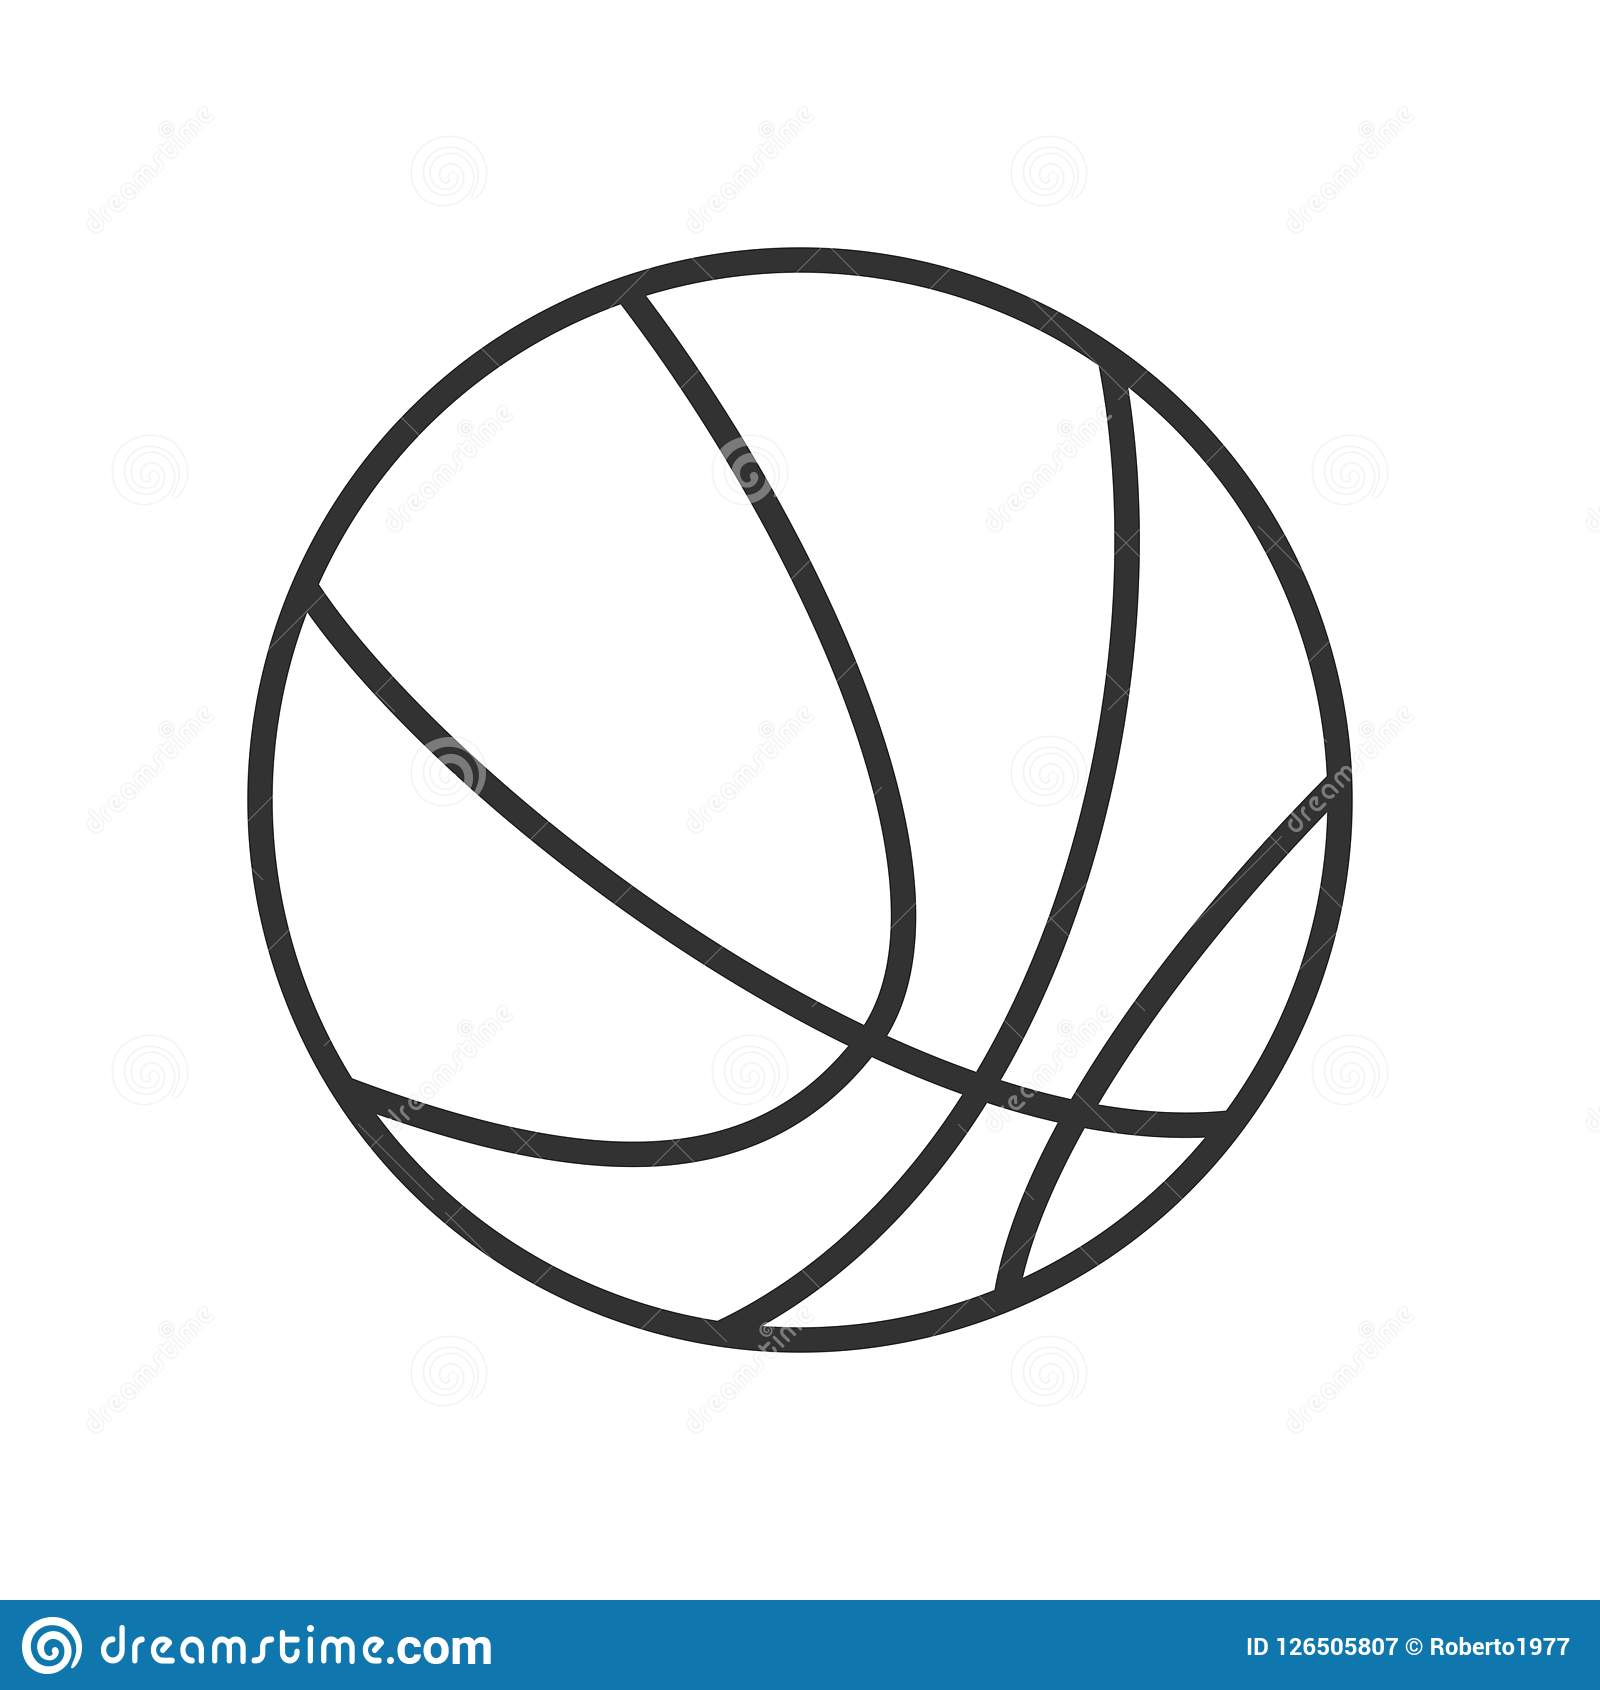 Basketball Ball Outline Flat Icon on White